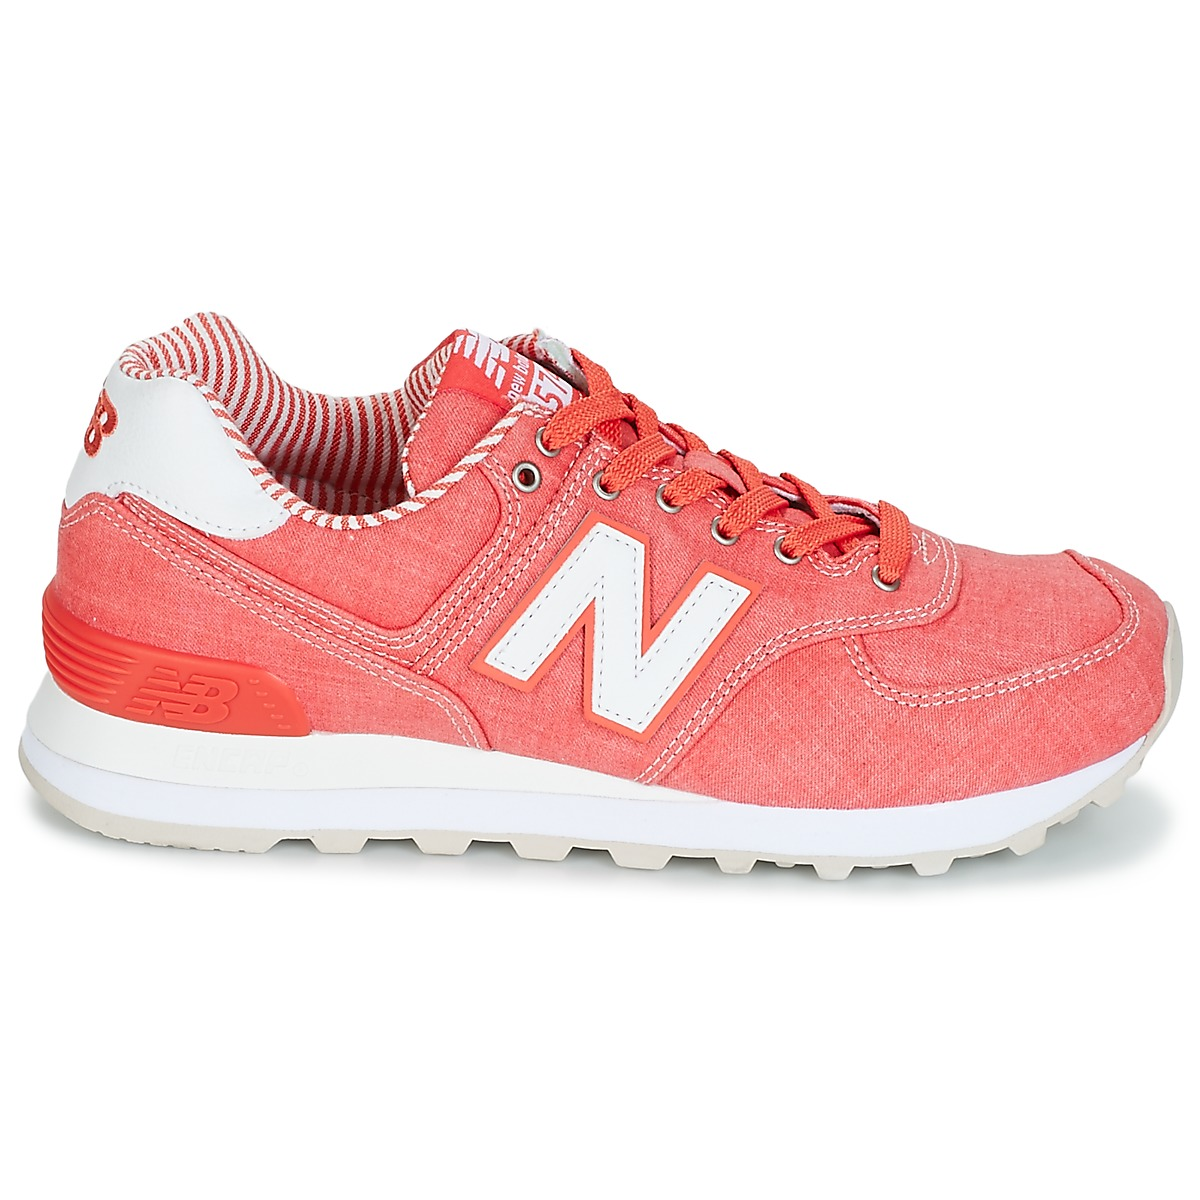 Baskets New Balance Wl574 Basses Wl574 Balance New Baskets Basses MpqUVSz